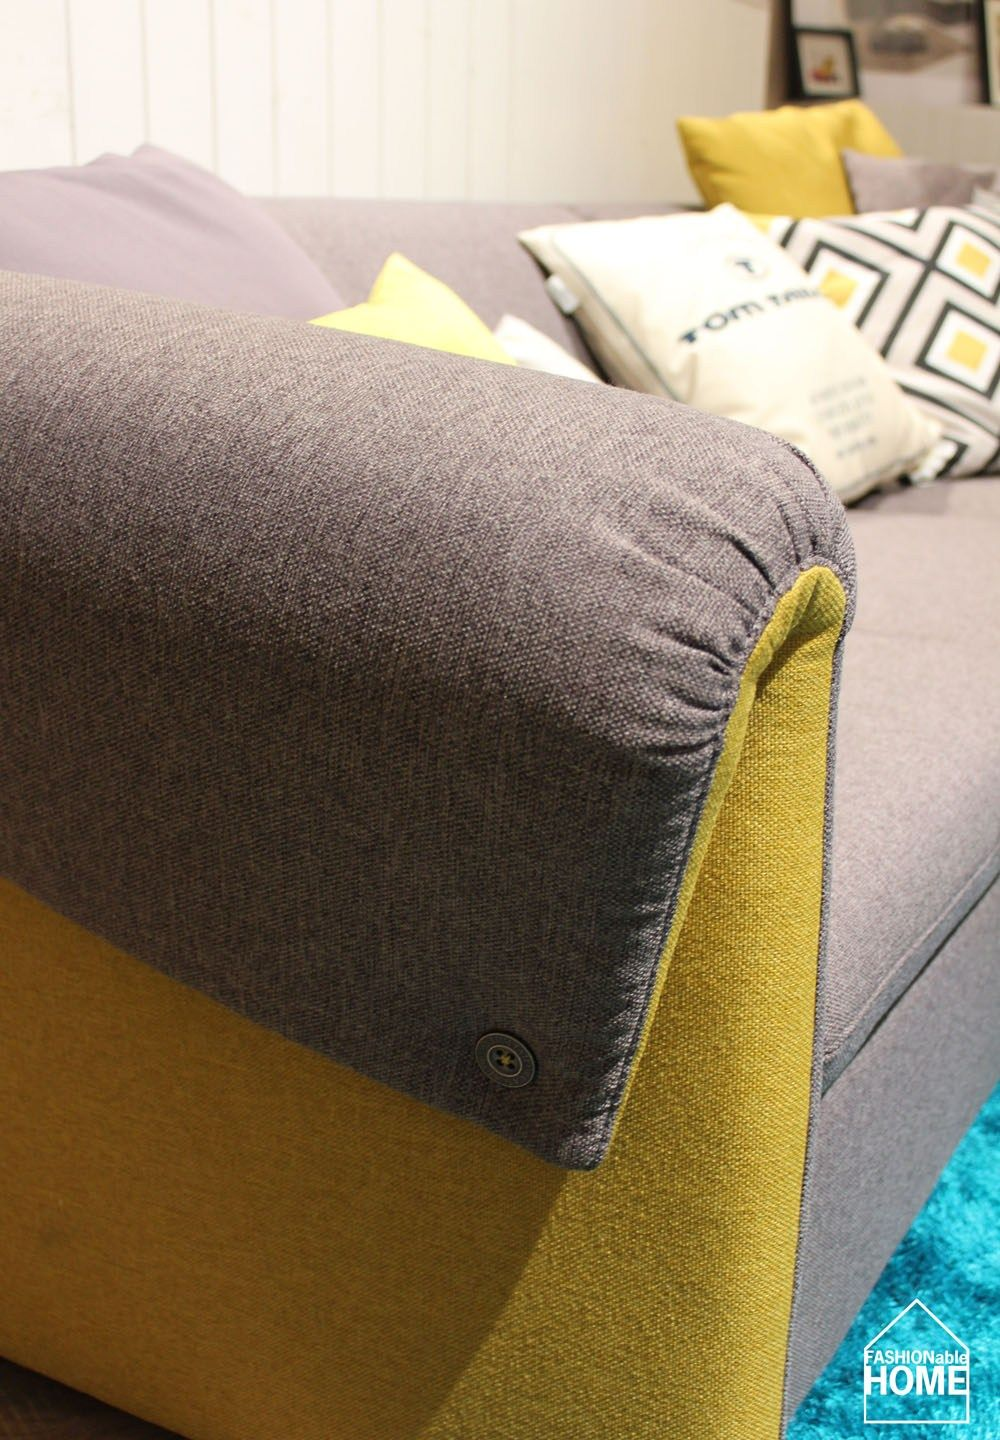 Tom Tailor Casual Home Imm 2013 Casual Home Tom Tailor Tailored